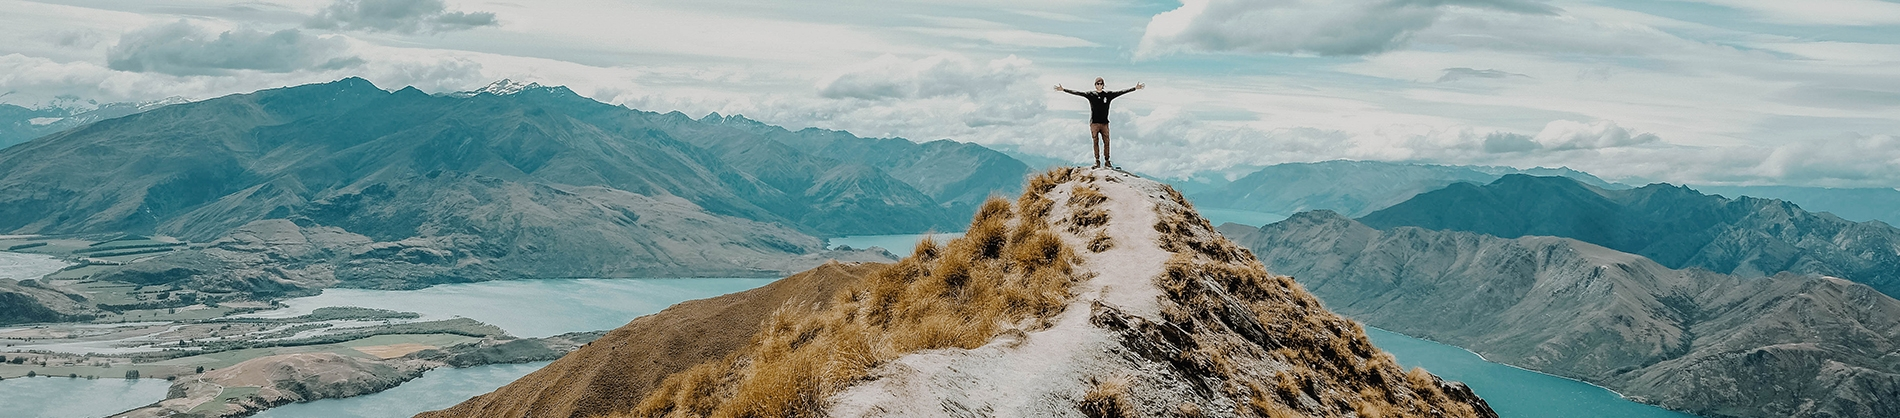 A man stood on top of a grassy cliff with his arms out wide